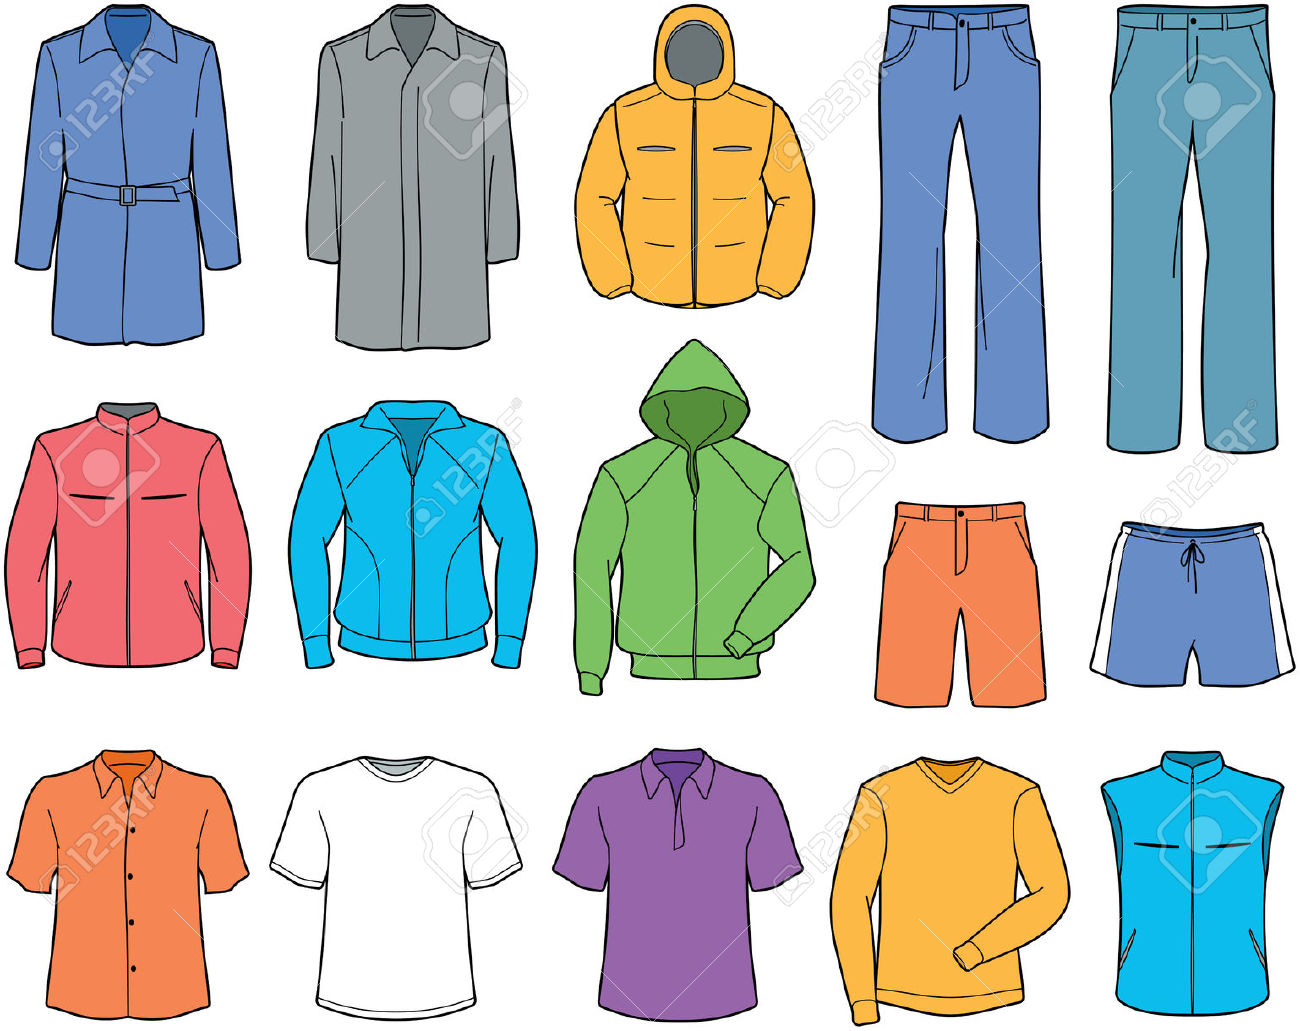 Free clothing clipart 4 » Clipart Station.